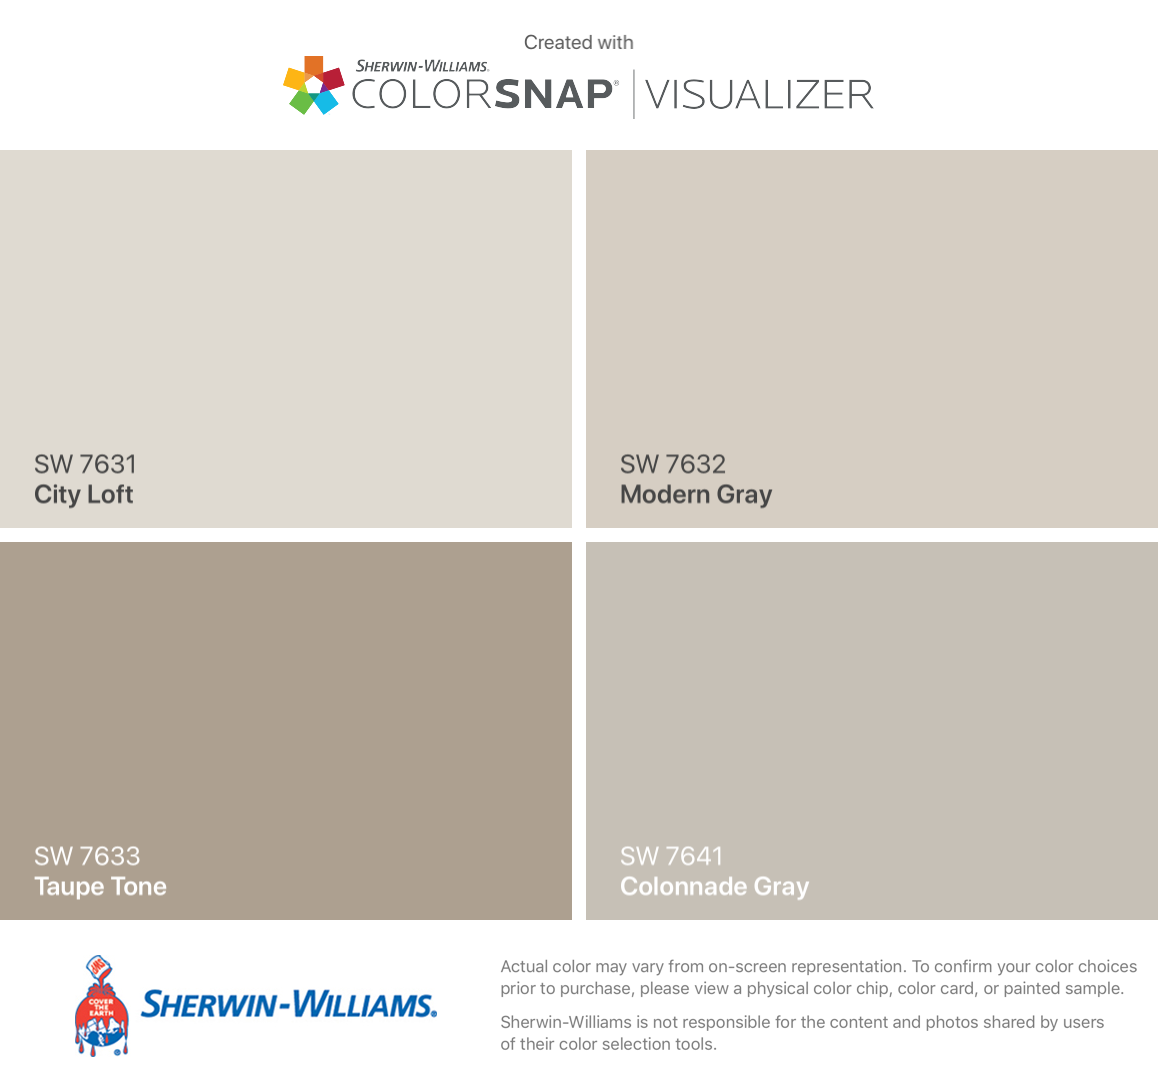 I found these colors with ColorSnap® Visualizer for iPhone by Sherwin-Williams: City Loft (SW 7631), Taupe Tone (SW 7633), Modern Gray (SW 7632), Colonnade Gray (SW 7641). #cityloftsherwinwilliams